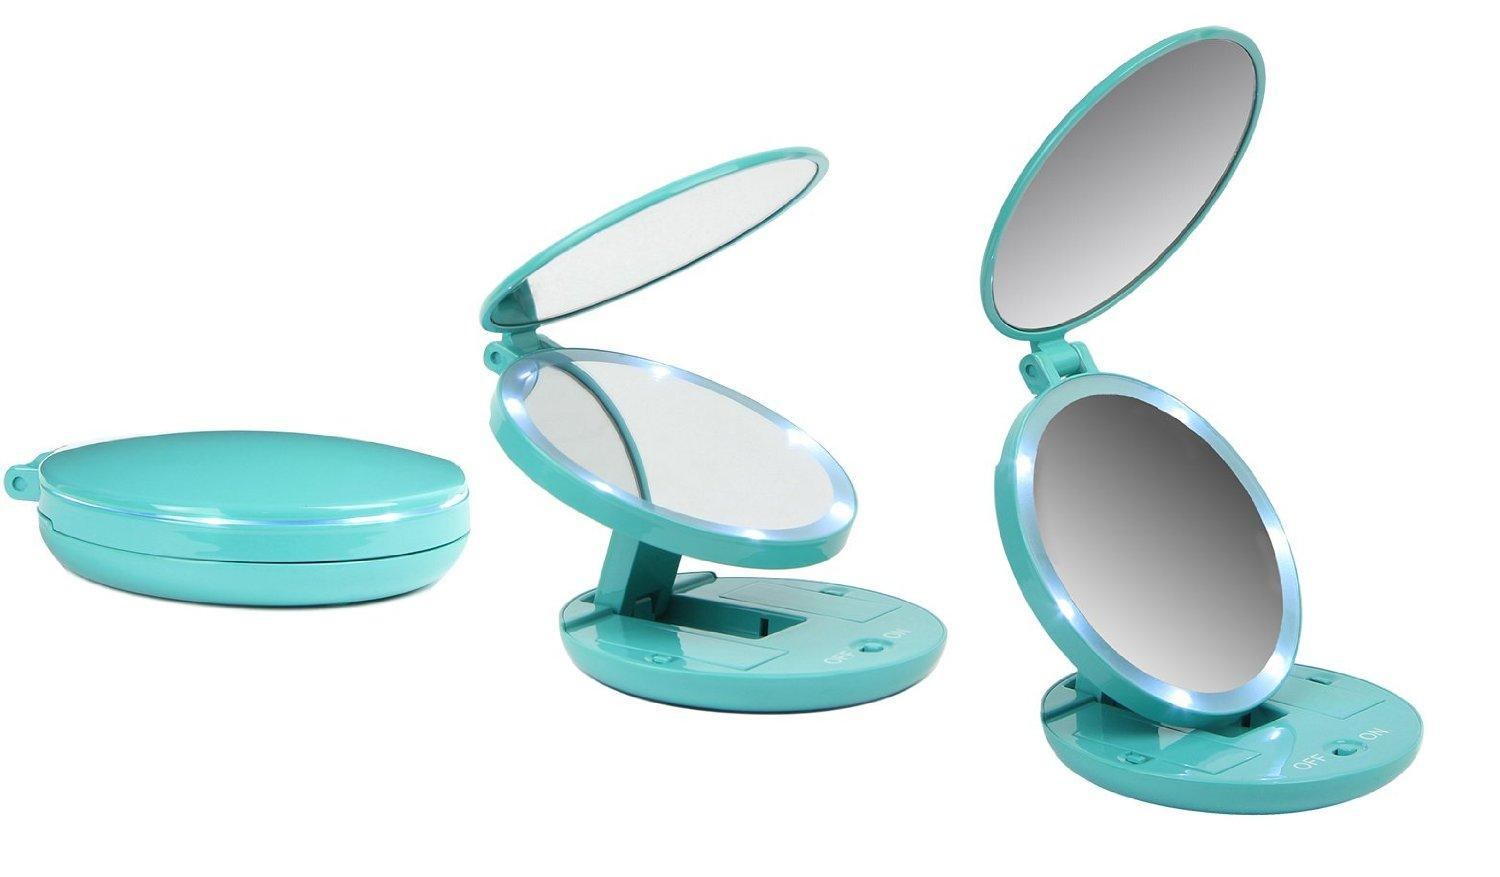 Facsmile Travel Makeup Mirror Compact Folding 5X Magnifying Double Mirror with LED Lighting